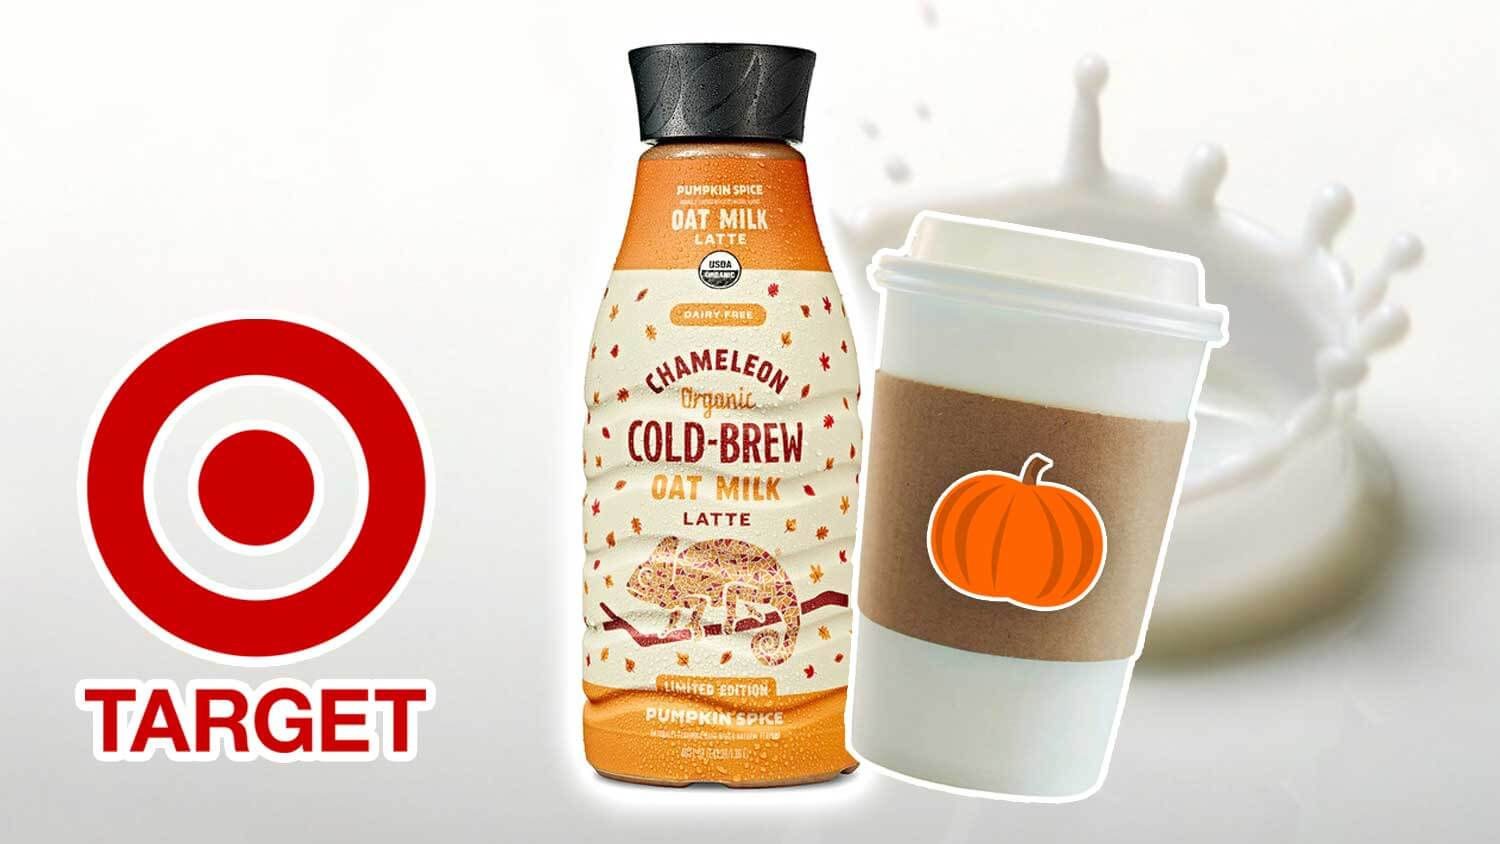 Chameleon Just Launched Pumpkin Spice Oat Lattes at Target